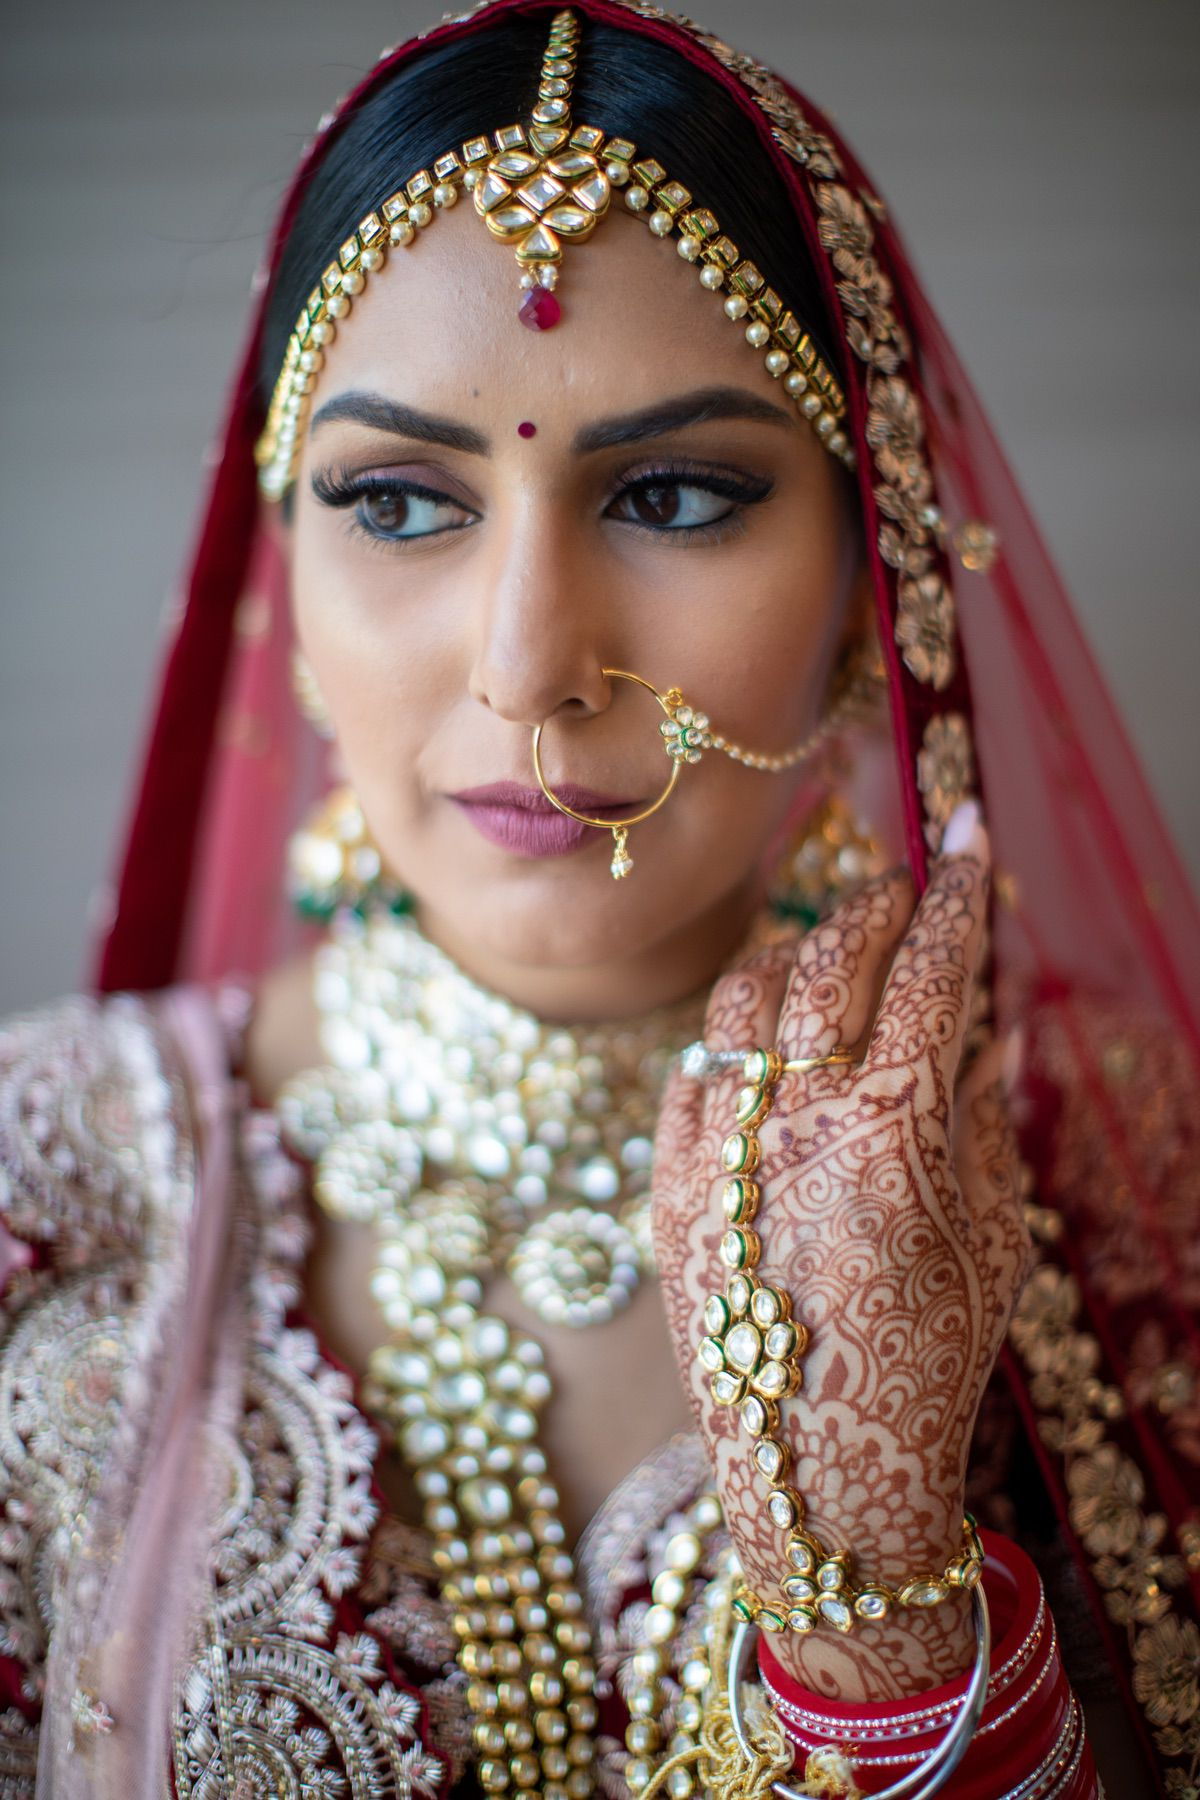 Le_Cape_Weddings_-_Serena_and_Kylash_-_Chicago_South_Asian_Wedding_-_Bride_Getting_Ready-64.jpg